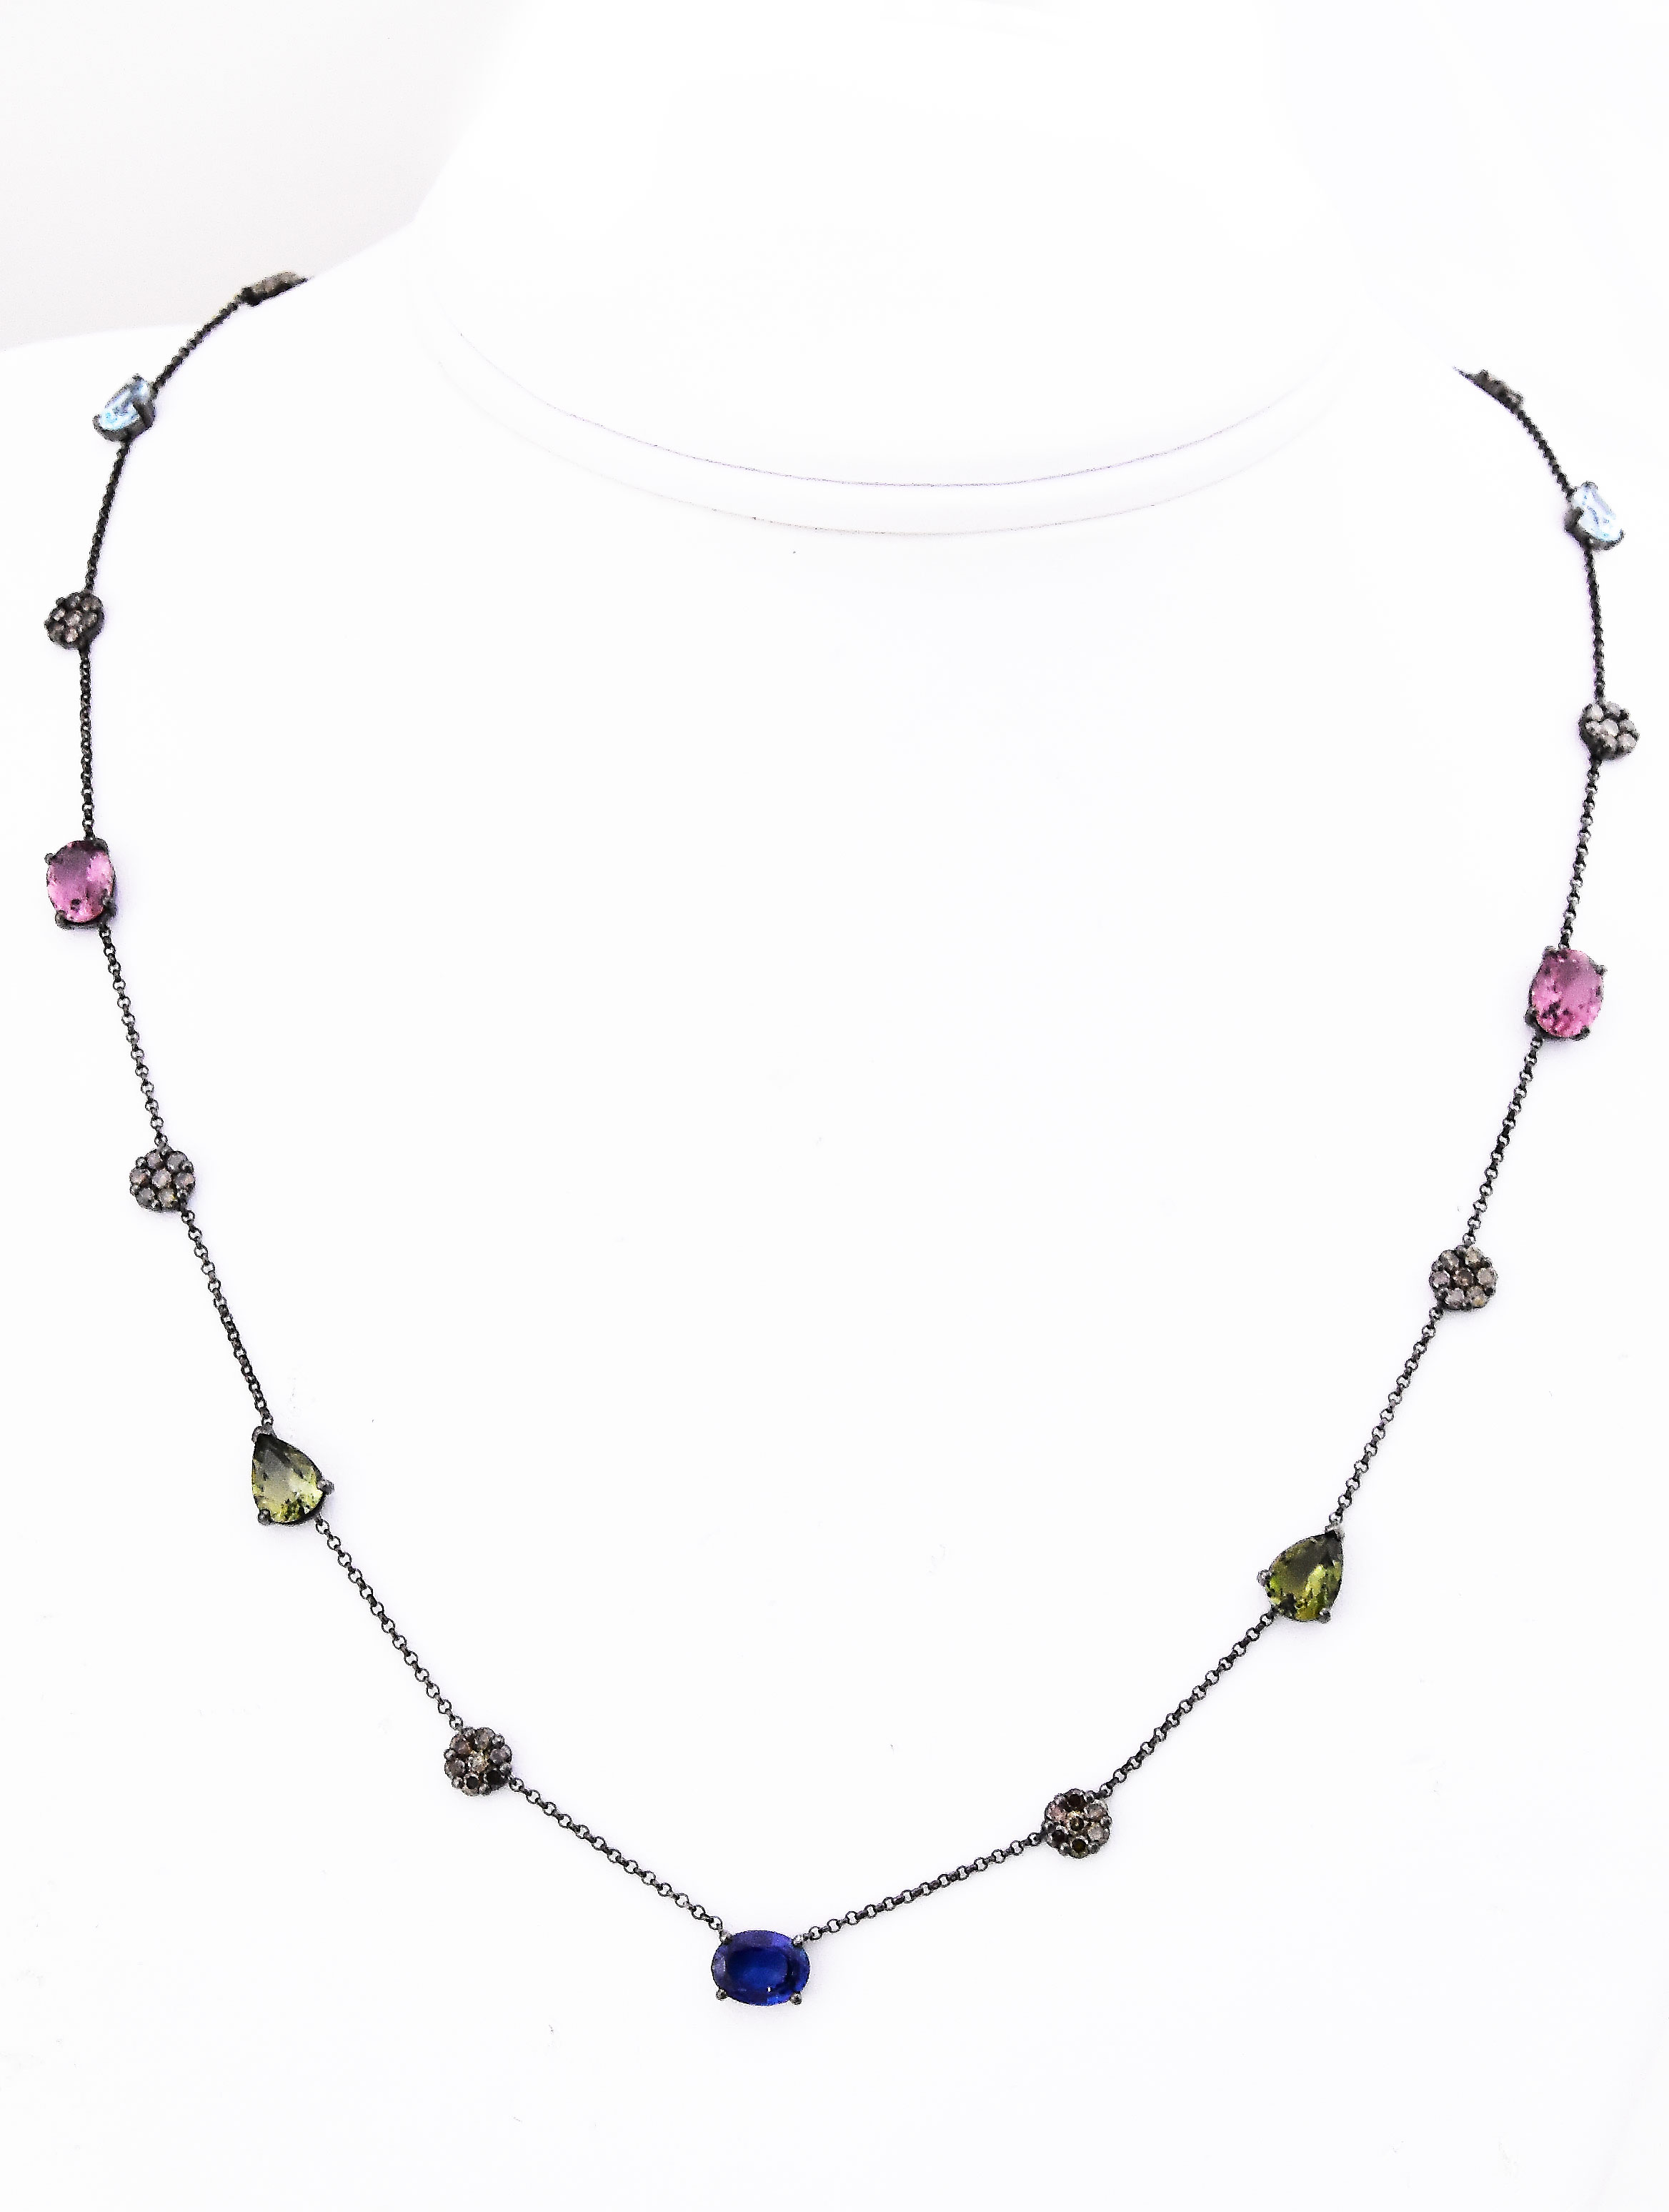 Over 9 Carats Total Weight Mutli-Color Gemstone Necklace